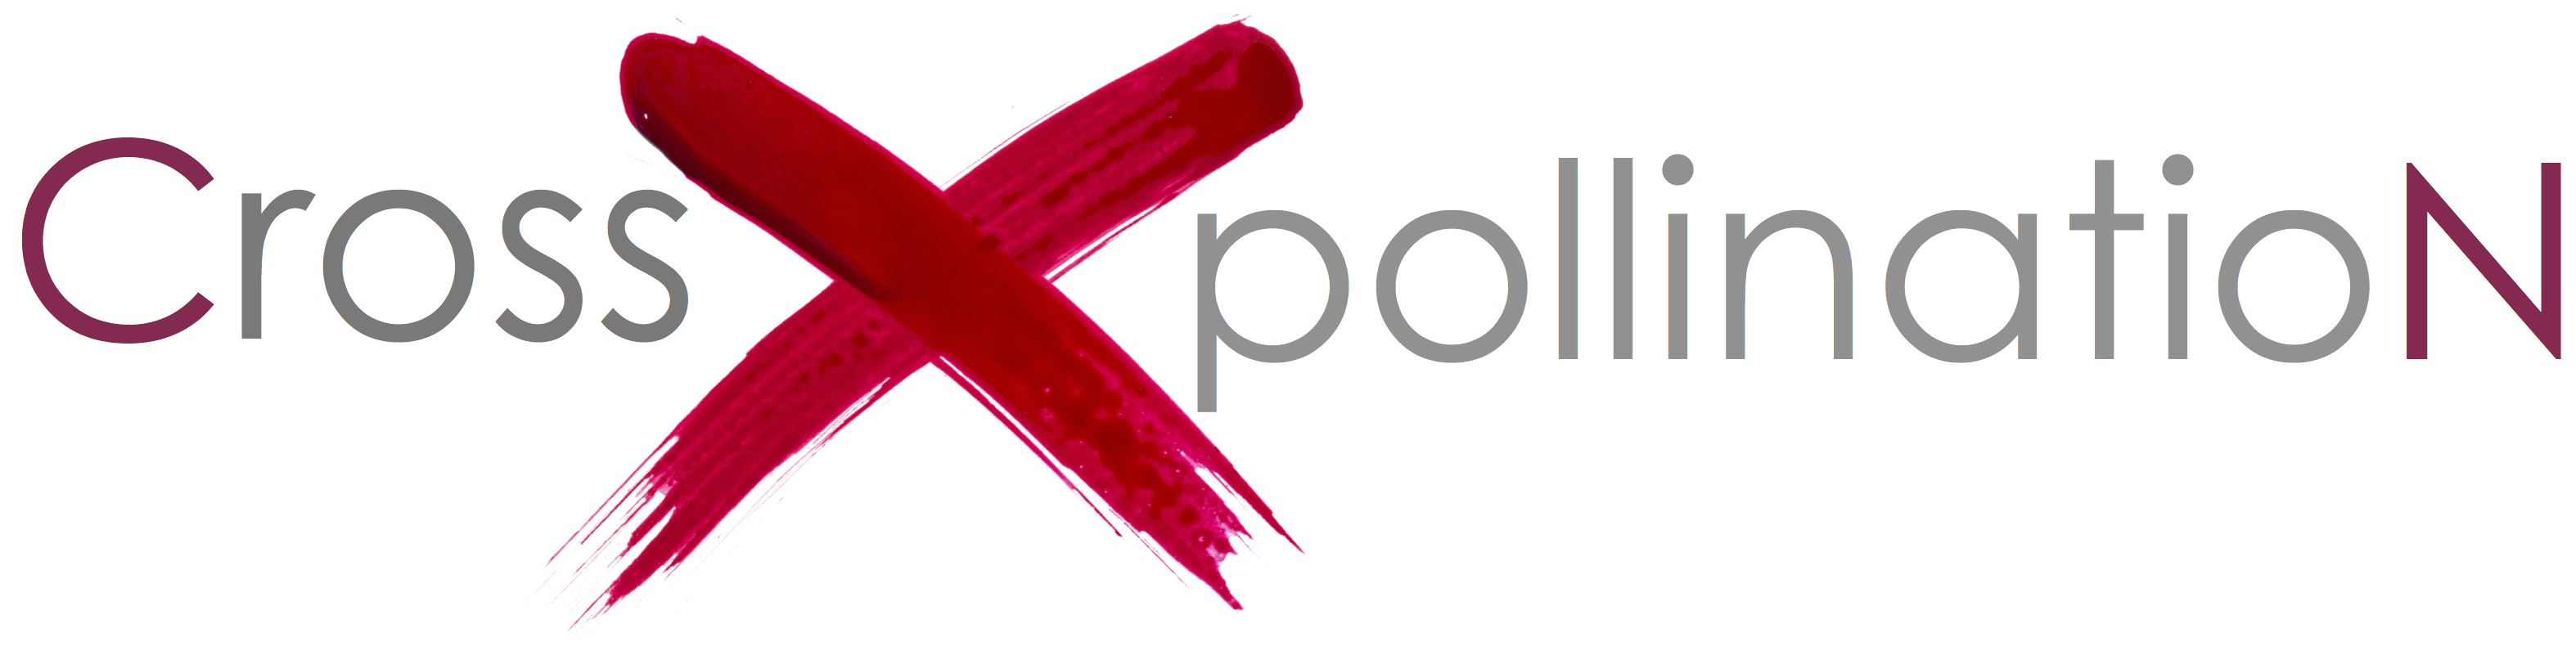 CrossXpollinatioN logo